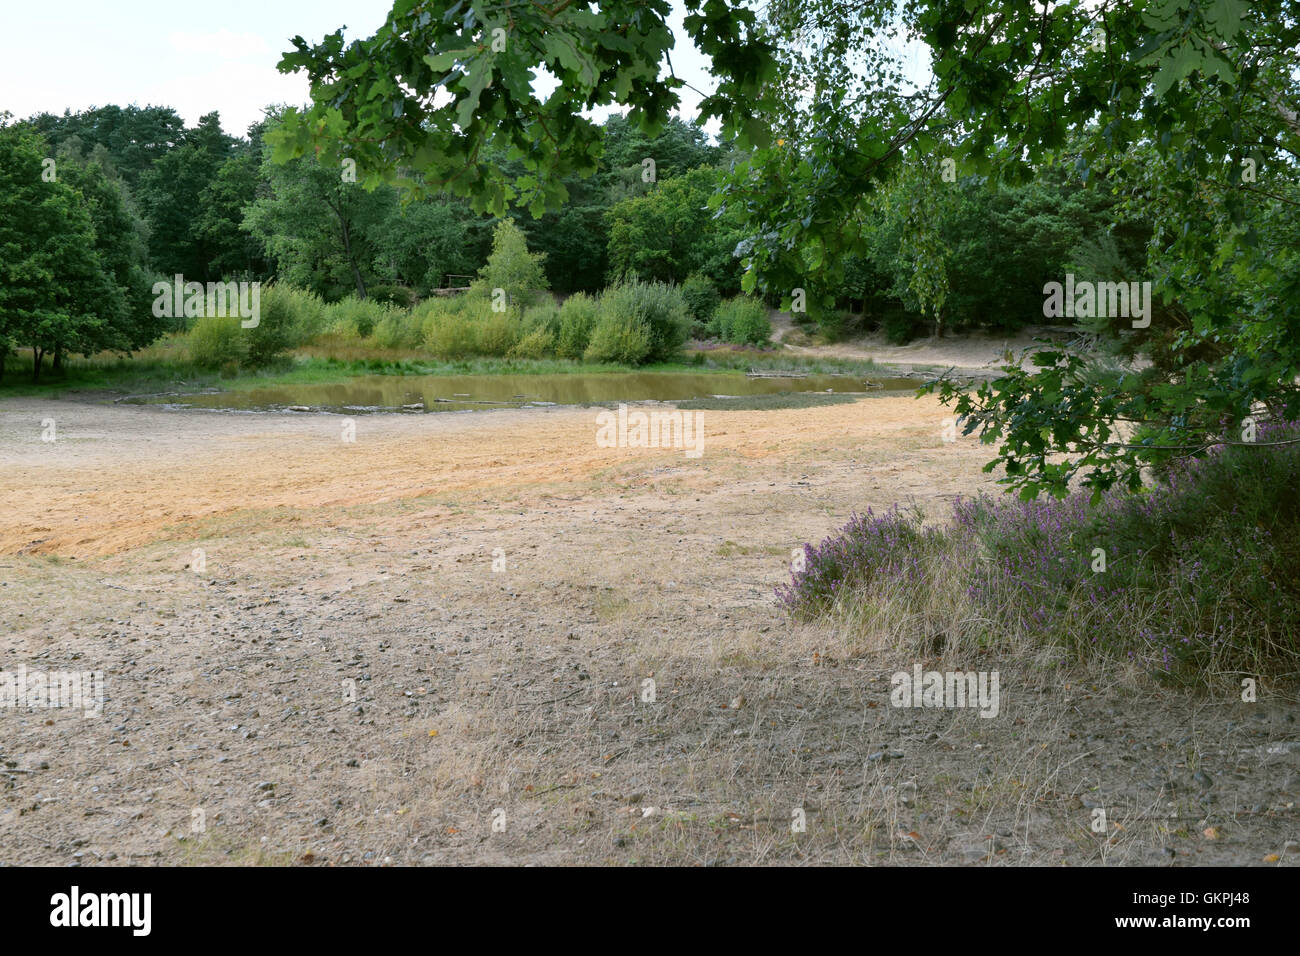 The sandy beach at Horsell Common, Surrey, near woking, in the summer. - Stock Image